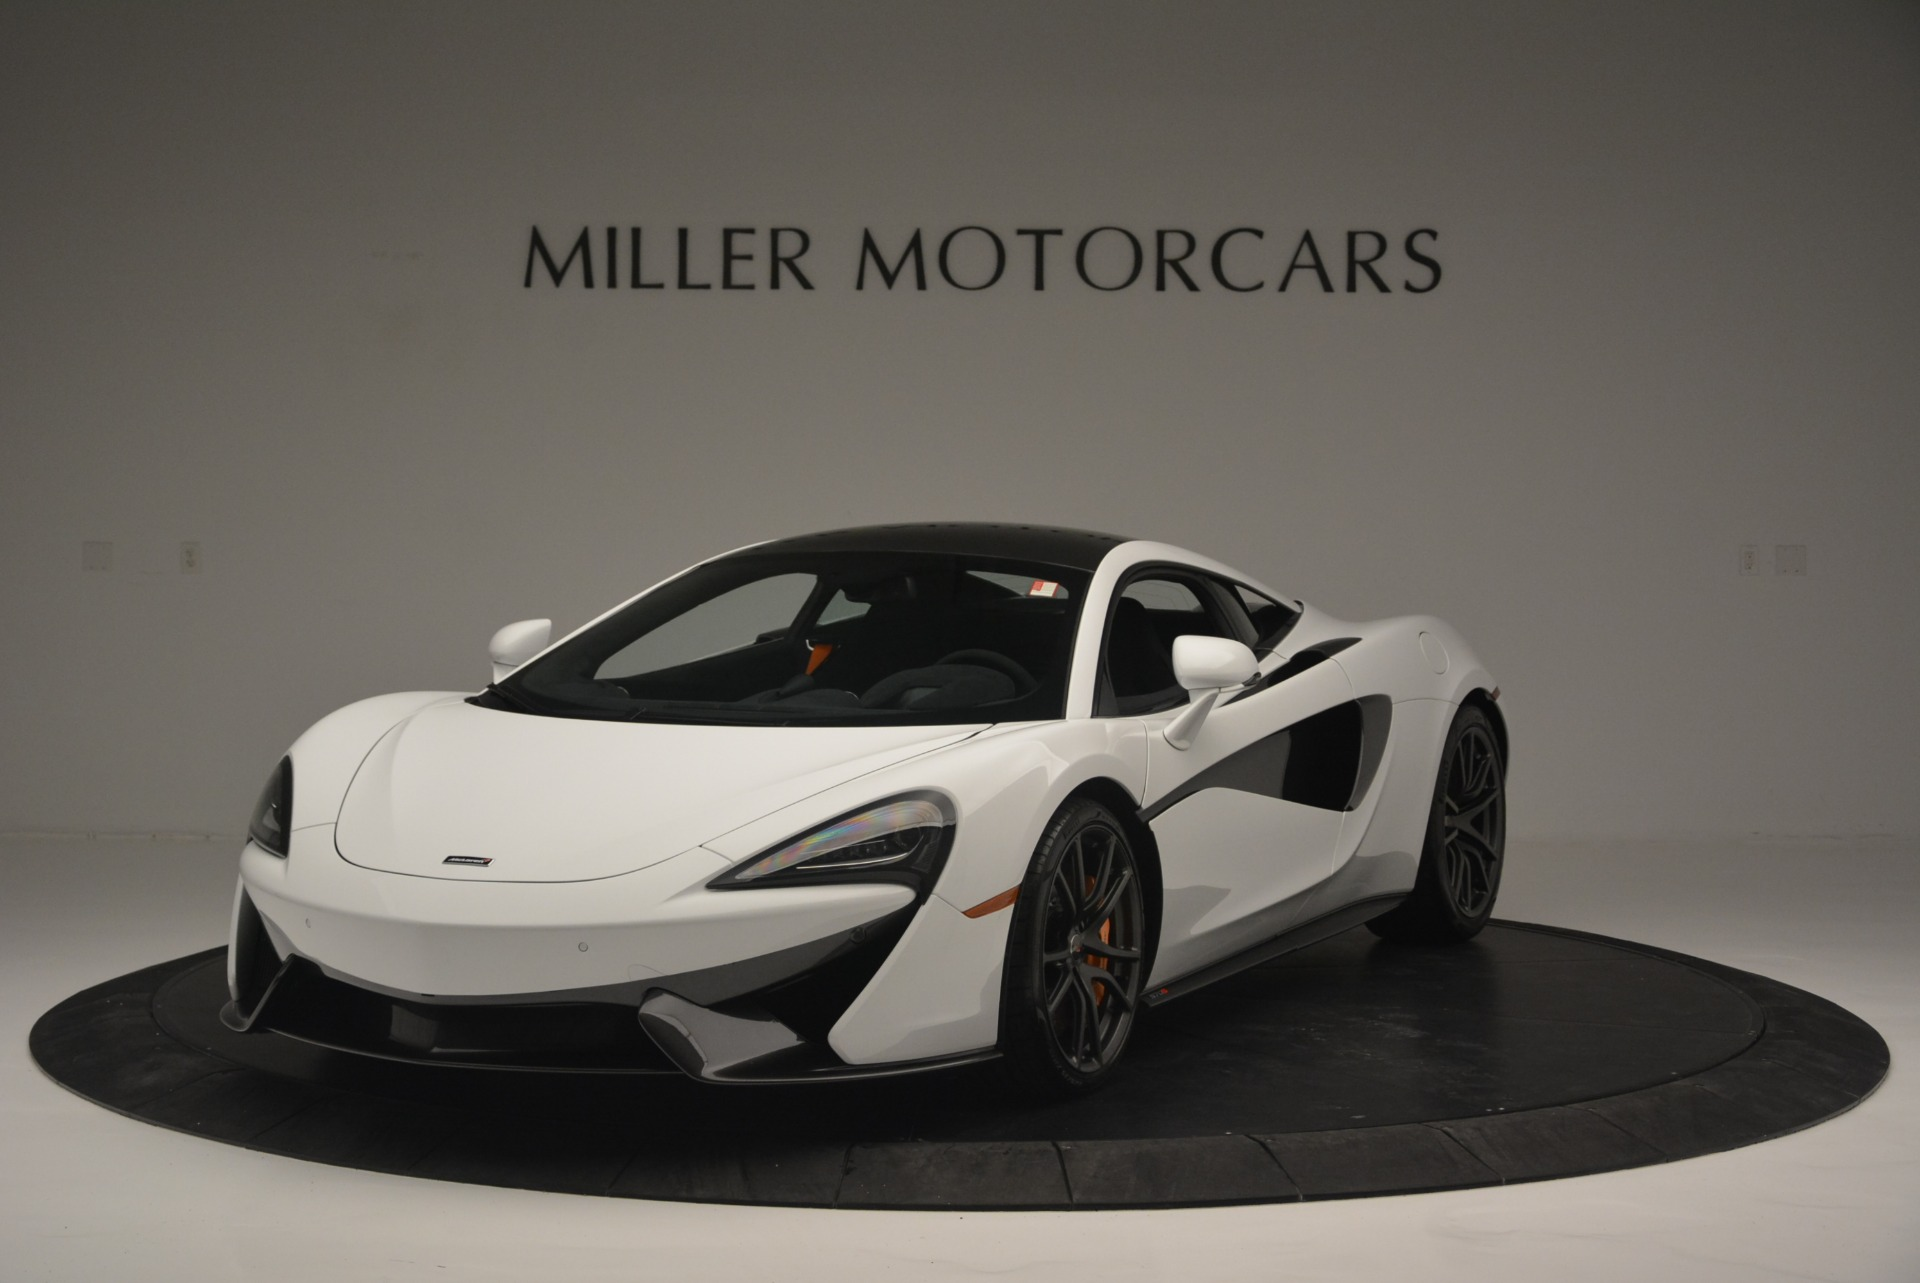 Used 2018 McLaren 570S Track Pack for sale Sold at Rolls-Royce Motor Cars Greenwich in Greenwich CT 06830 1